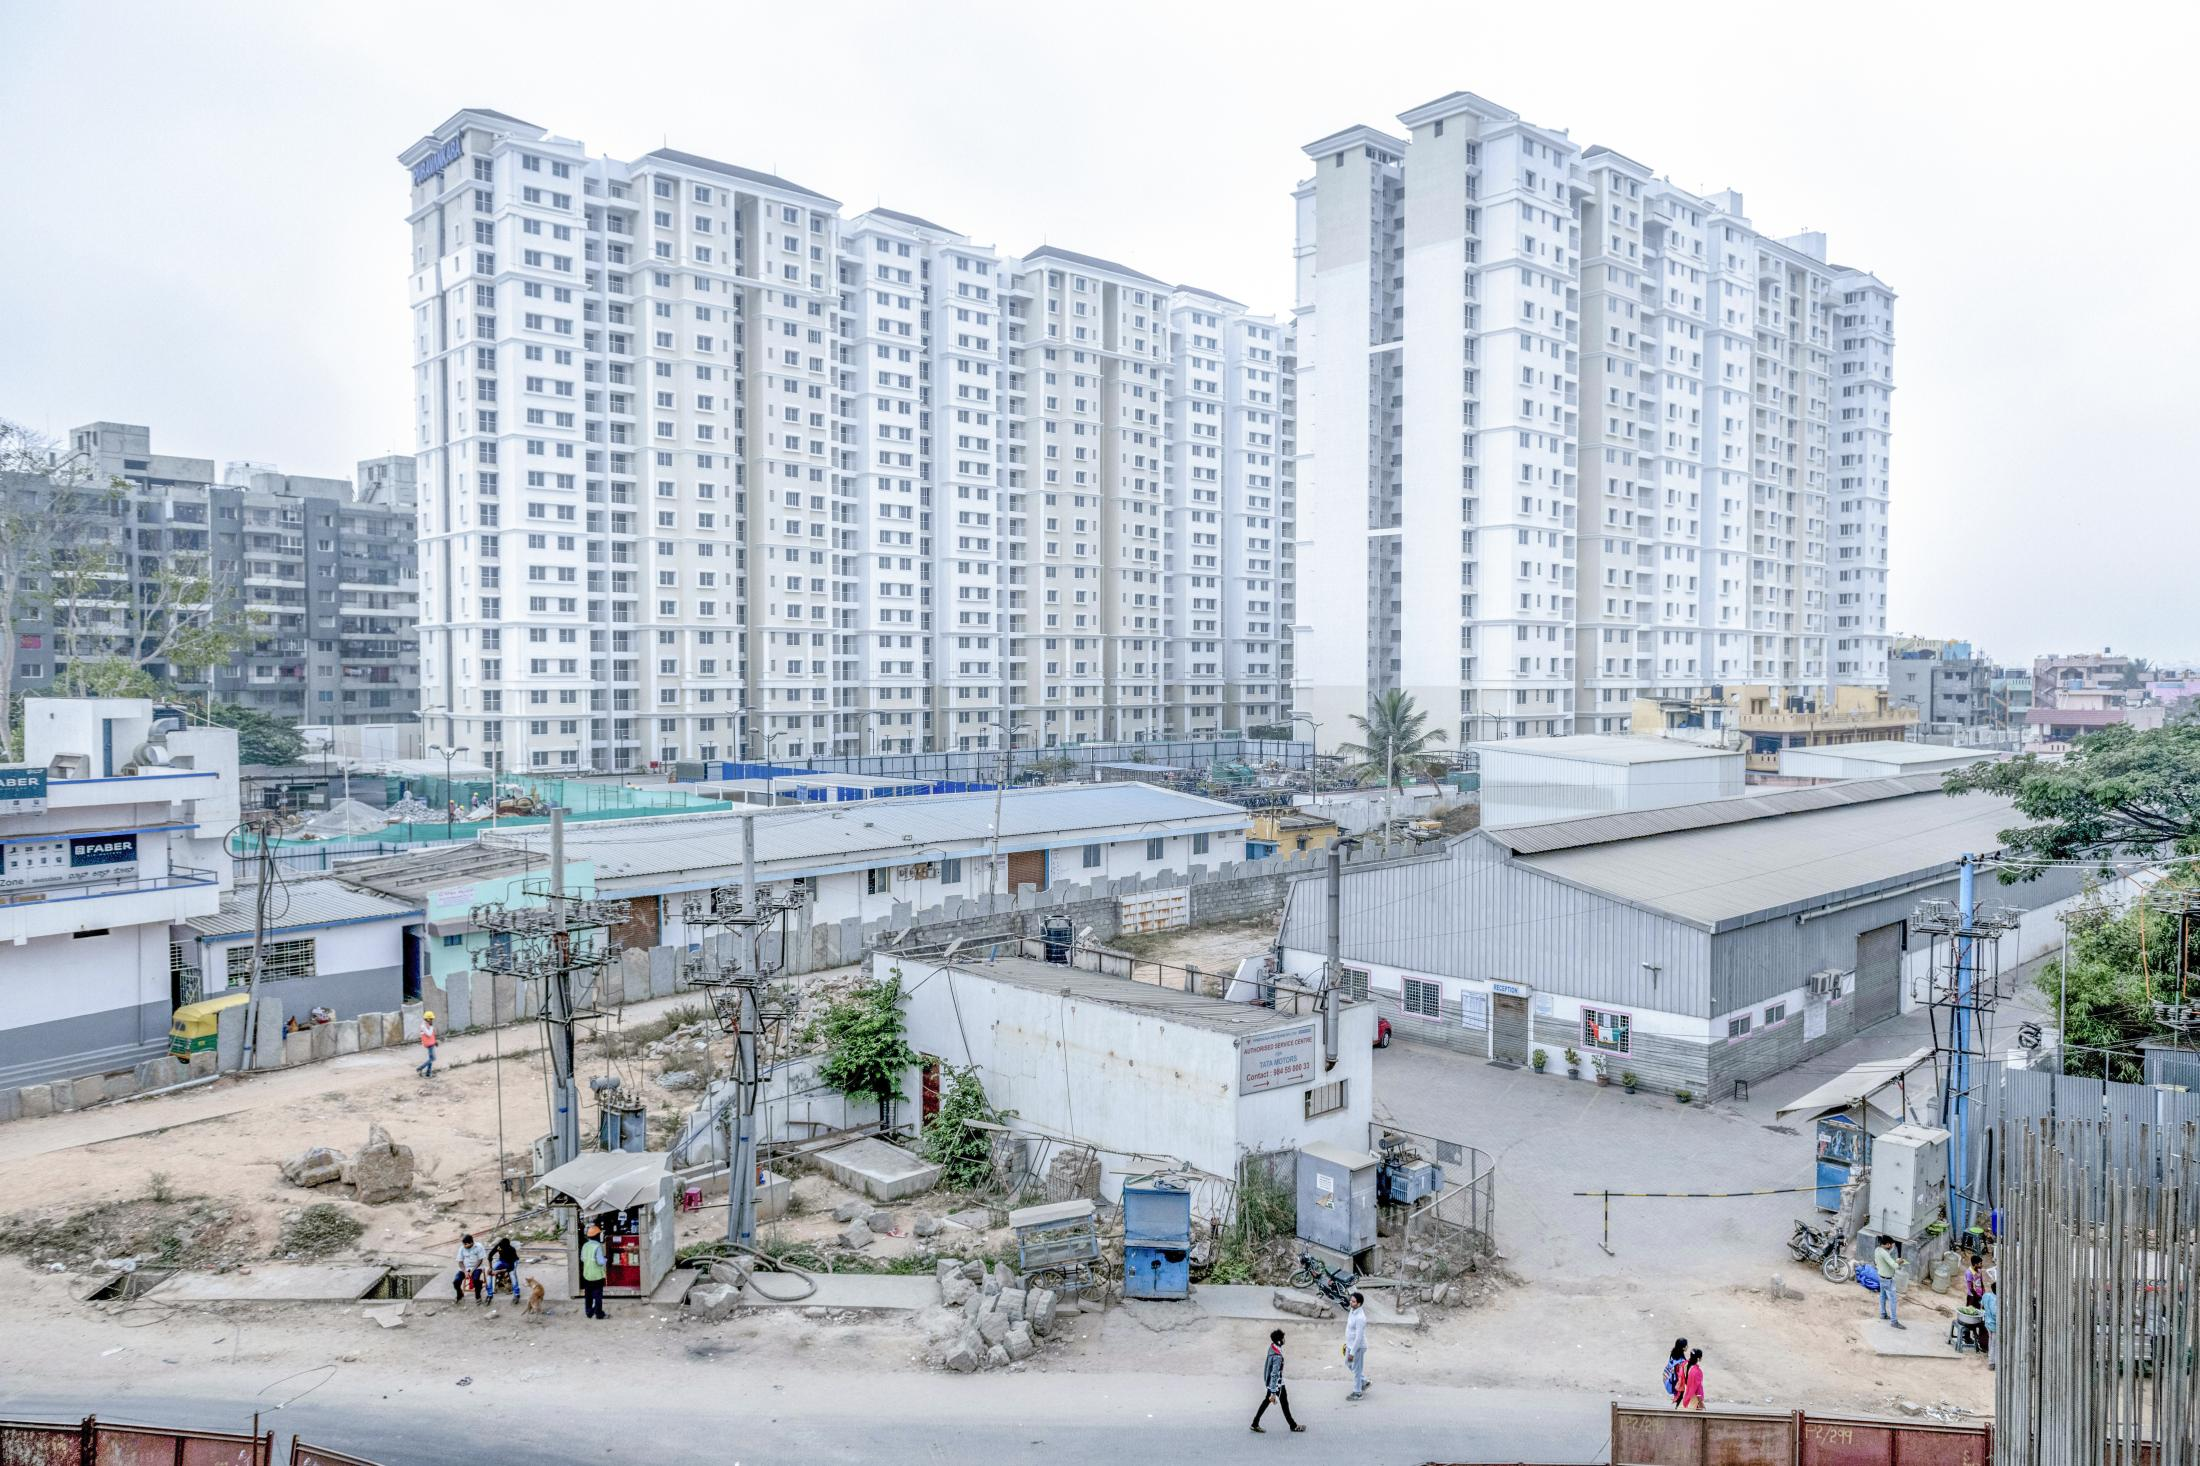 The city has been successful in drawing high levels of foreign direct investment, along with structural reforms. This encourages foreign real estate investors who are interested in the India's favourable growth dynamics.